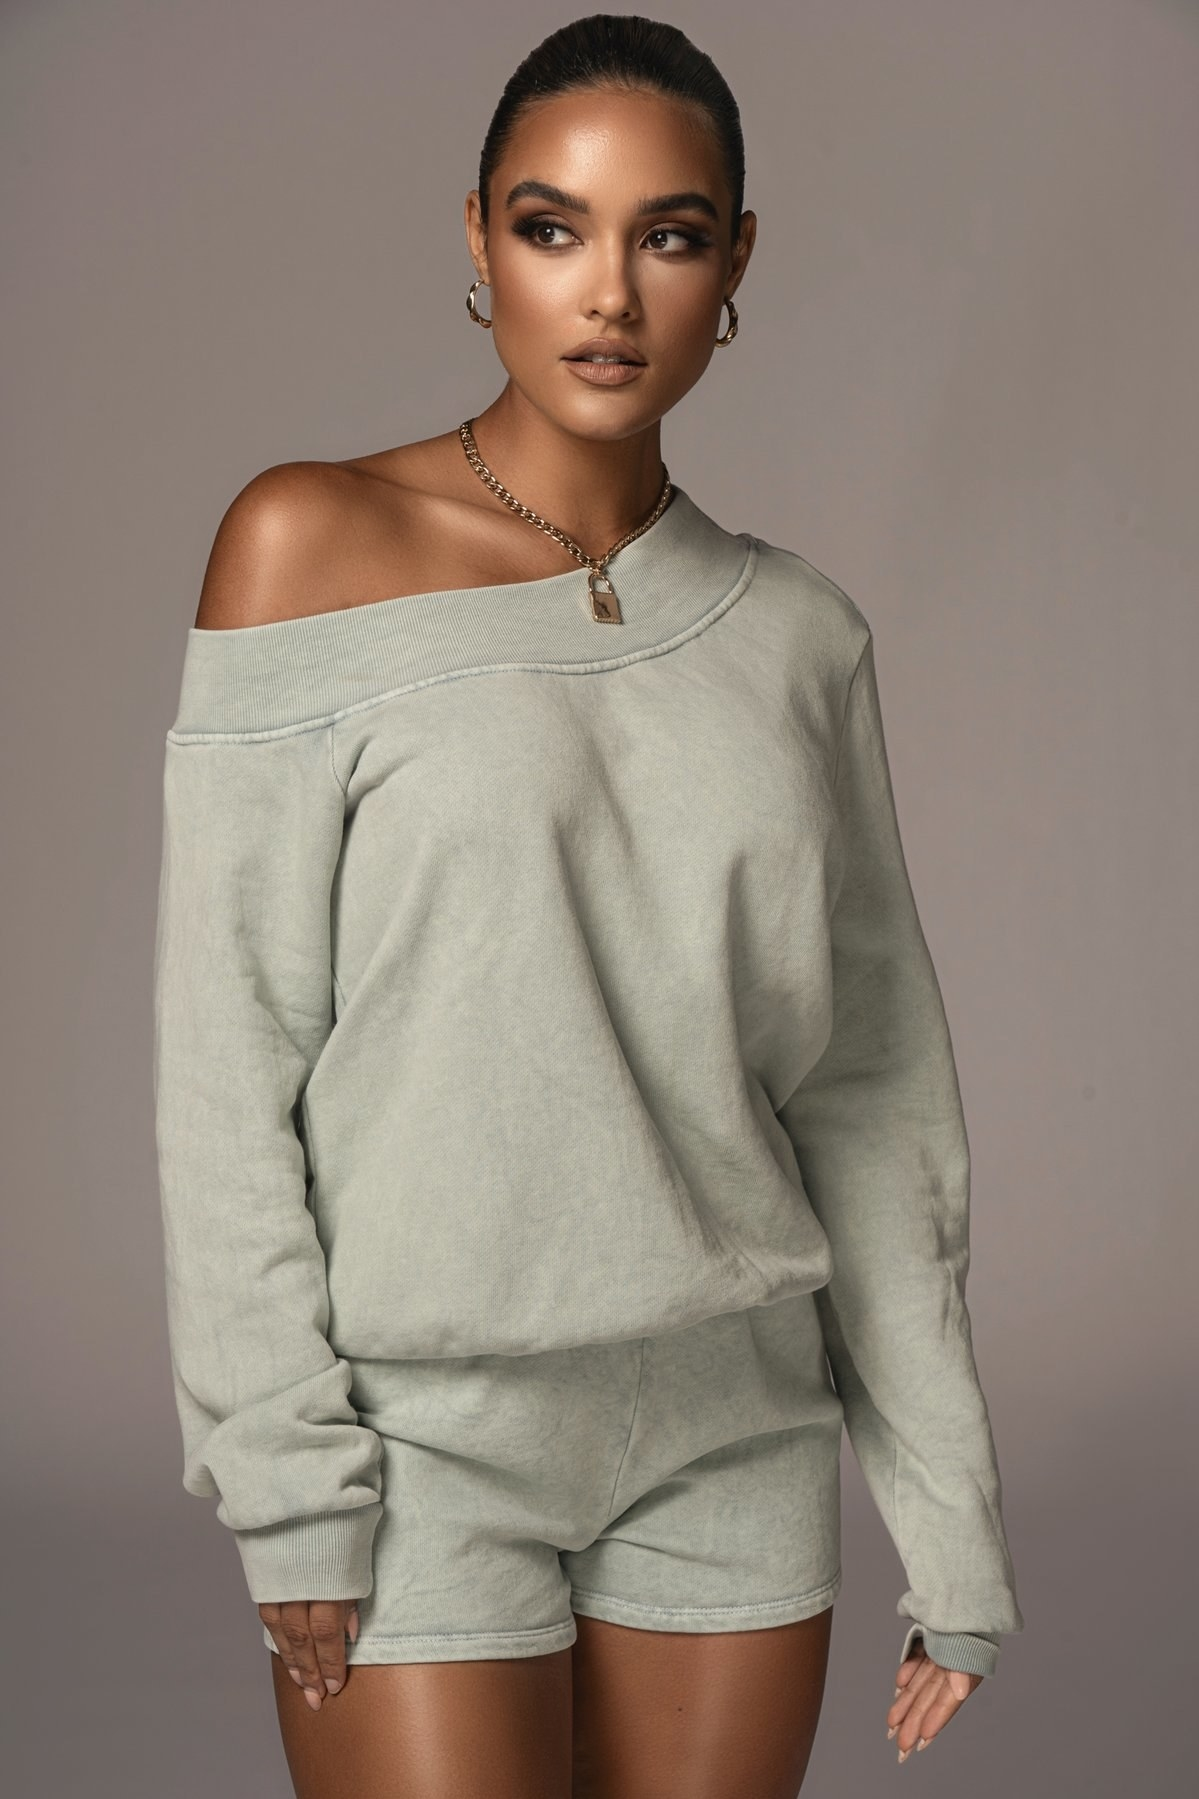 model wearing a sage green off-shoulder sweatshirt and matching shorts